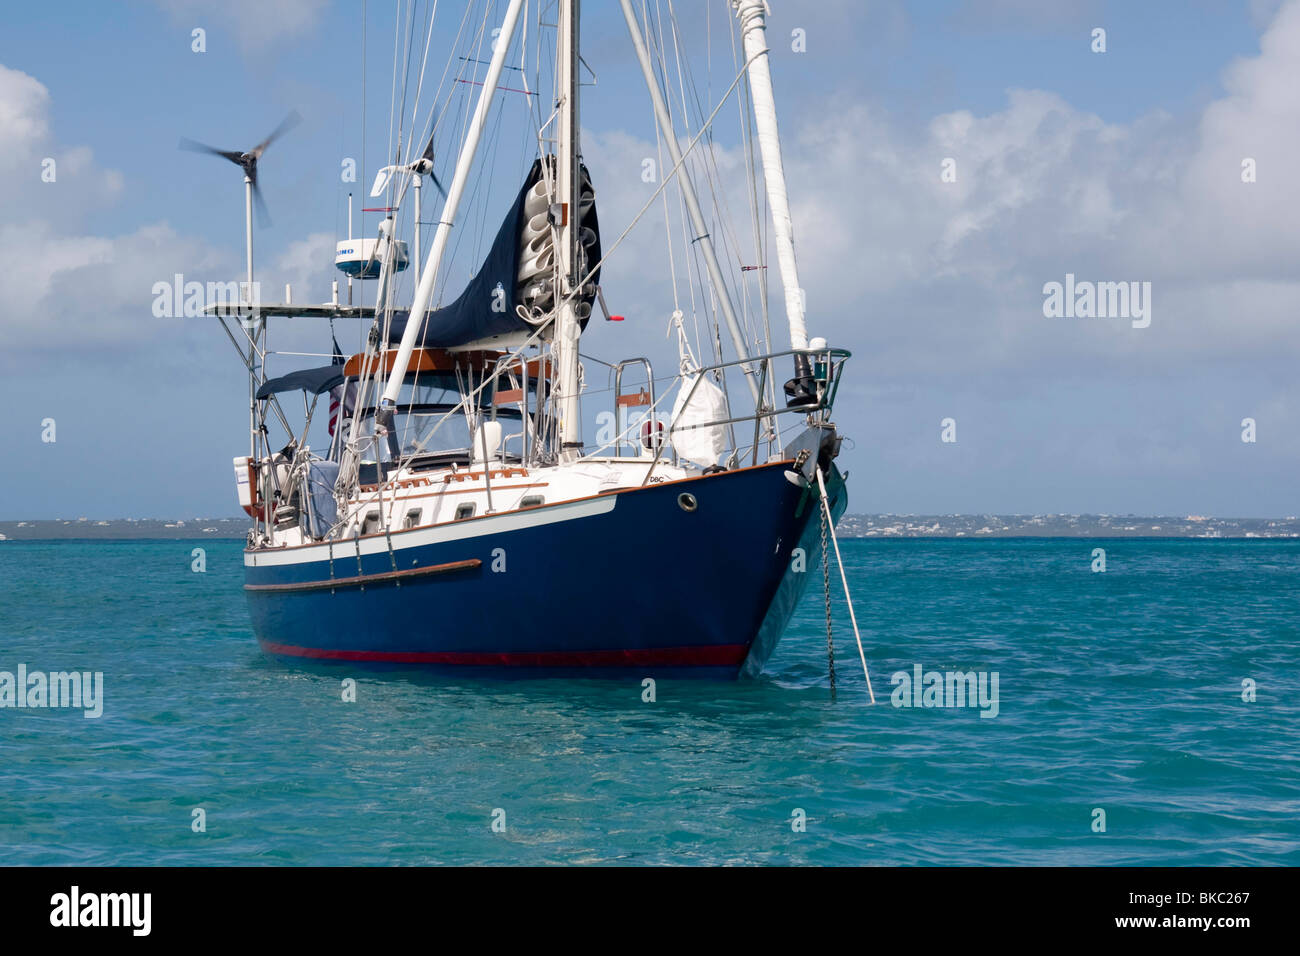 Crealock 34 LORD'S PRAYER Anchored at Anse Marcel, Saint Martin - Stock Image